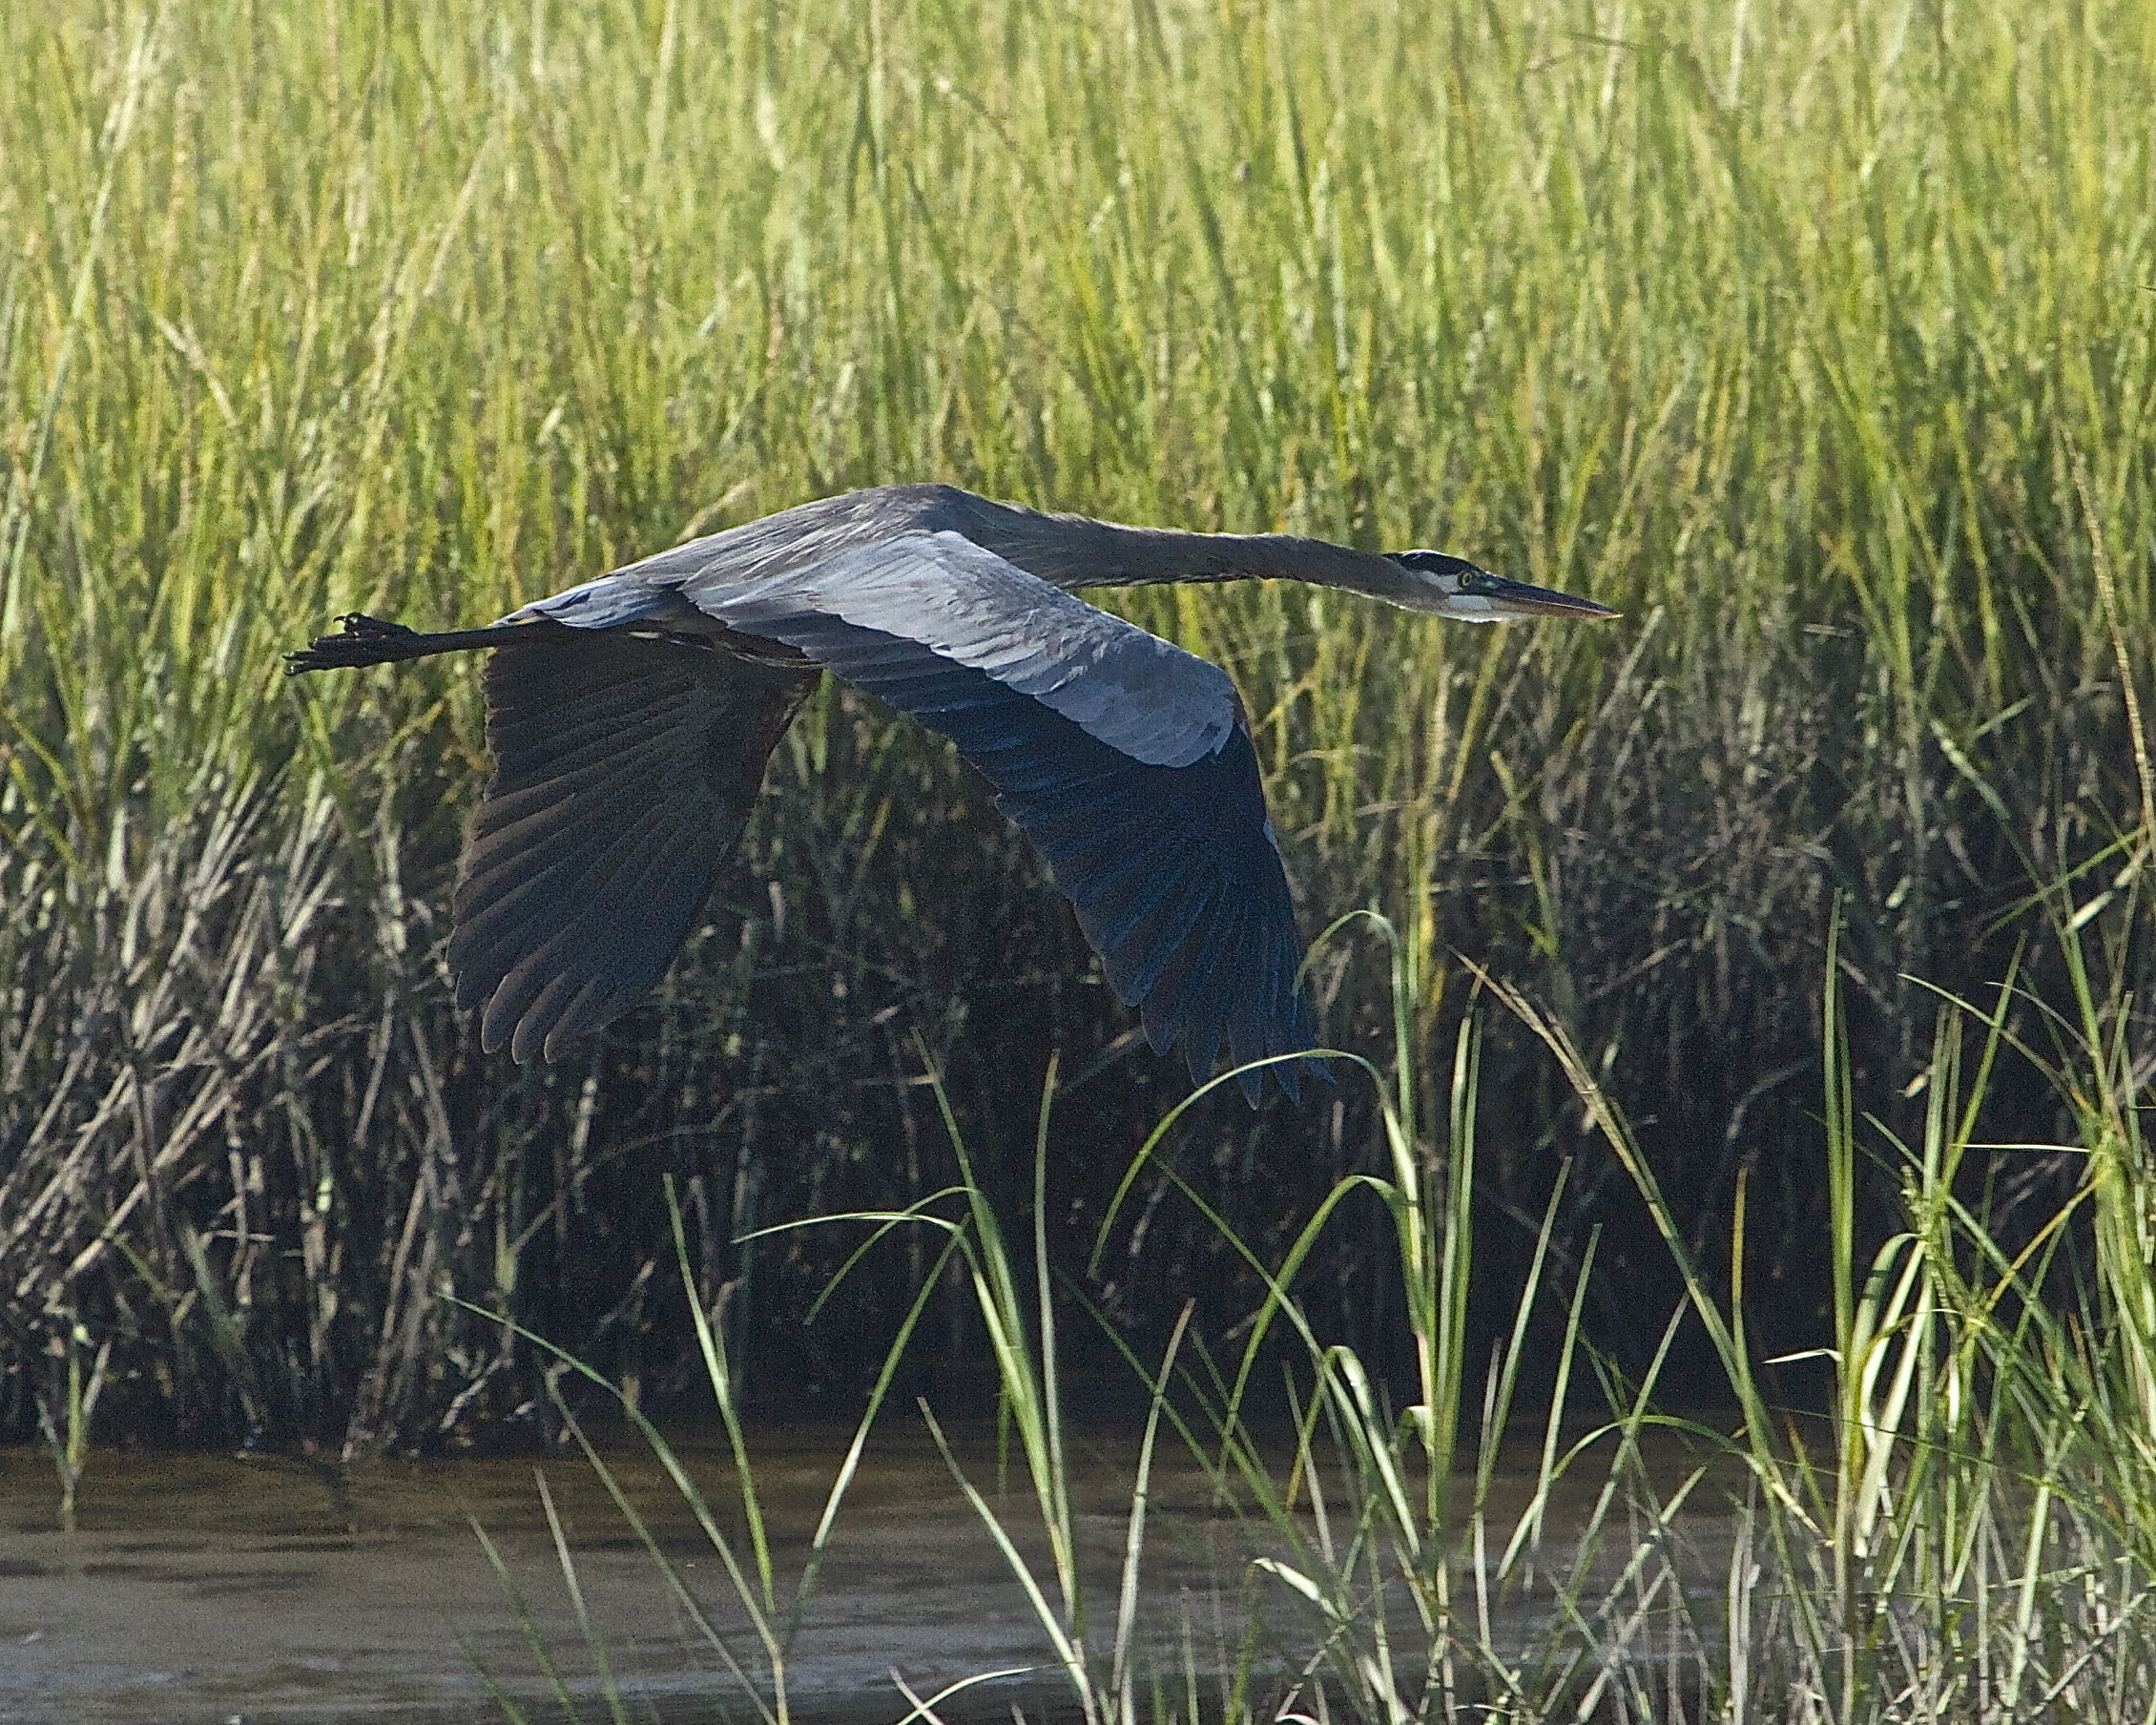 Old Man River, the Great Blue Heron is very camera shy still. As soon as I arrive he raises those wings and leaves.